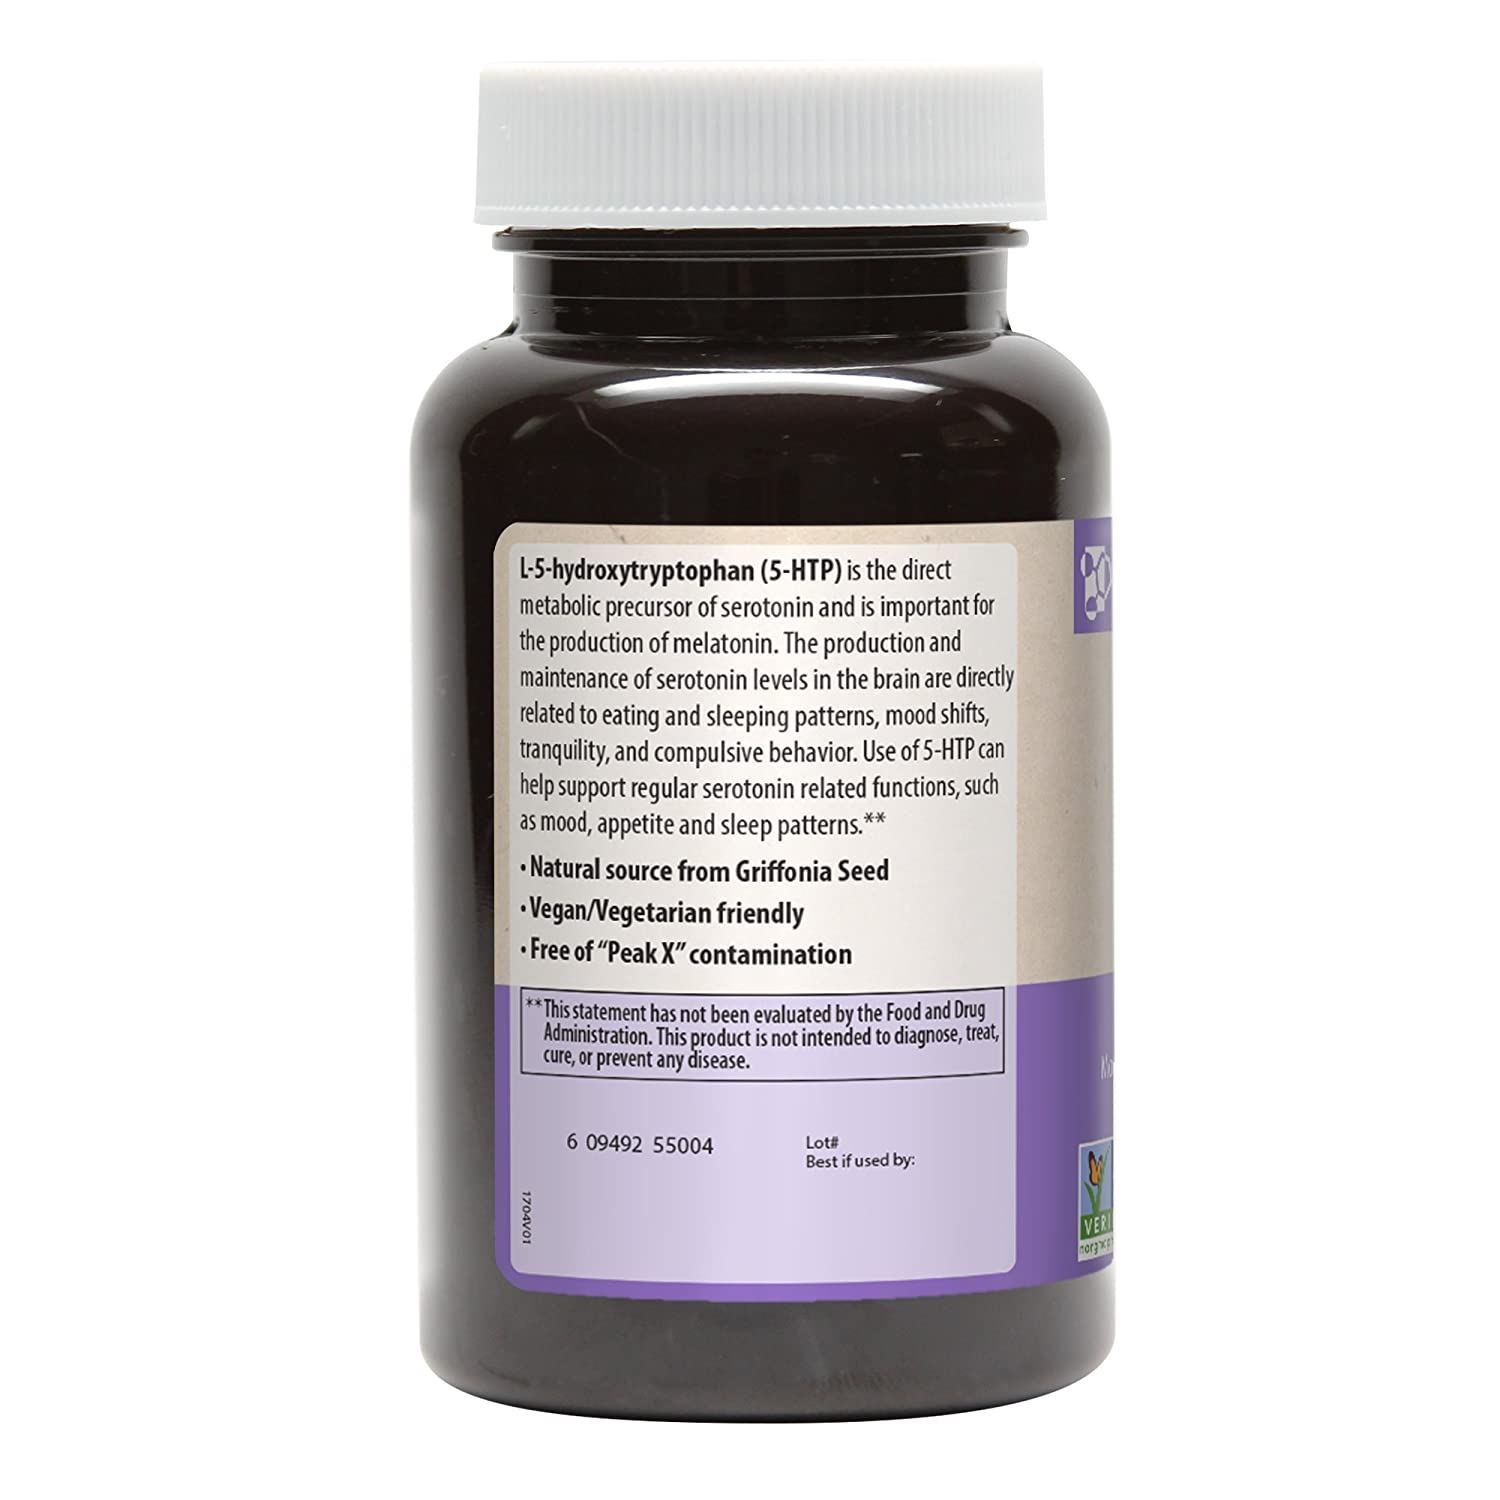 5-HTP 100mg (Griffonia Bean Extract) Purity Assured by HPLC